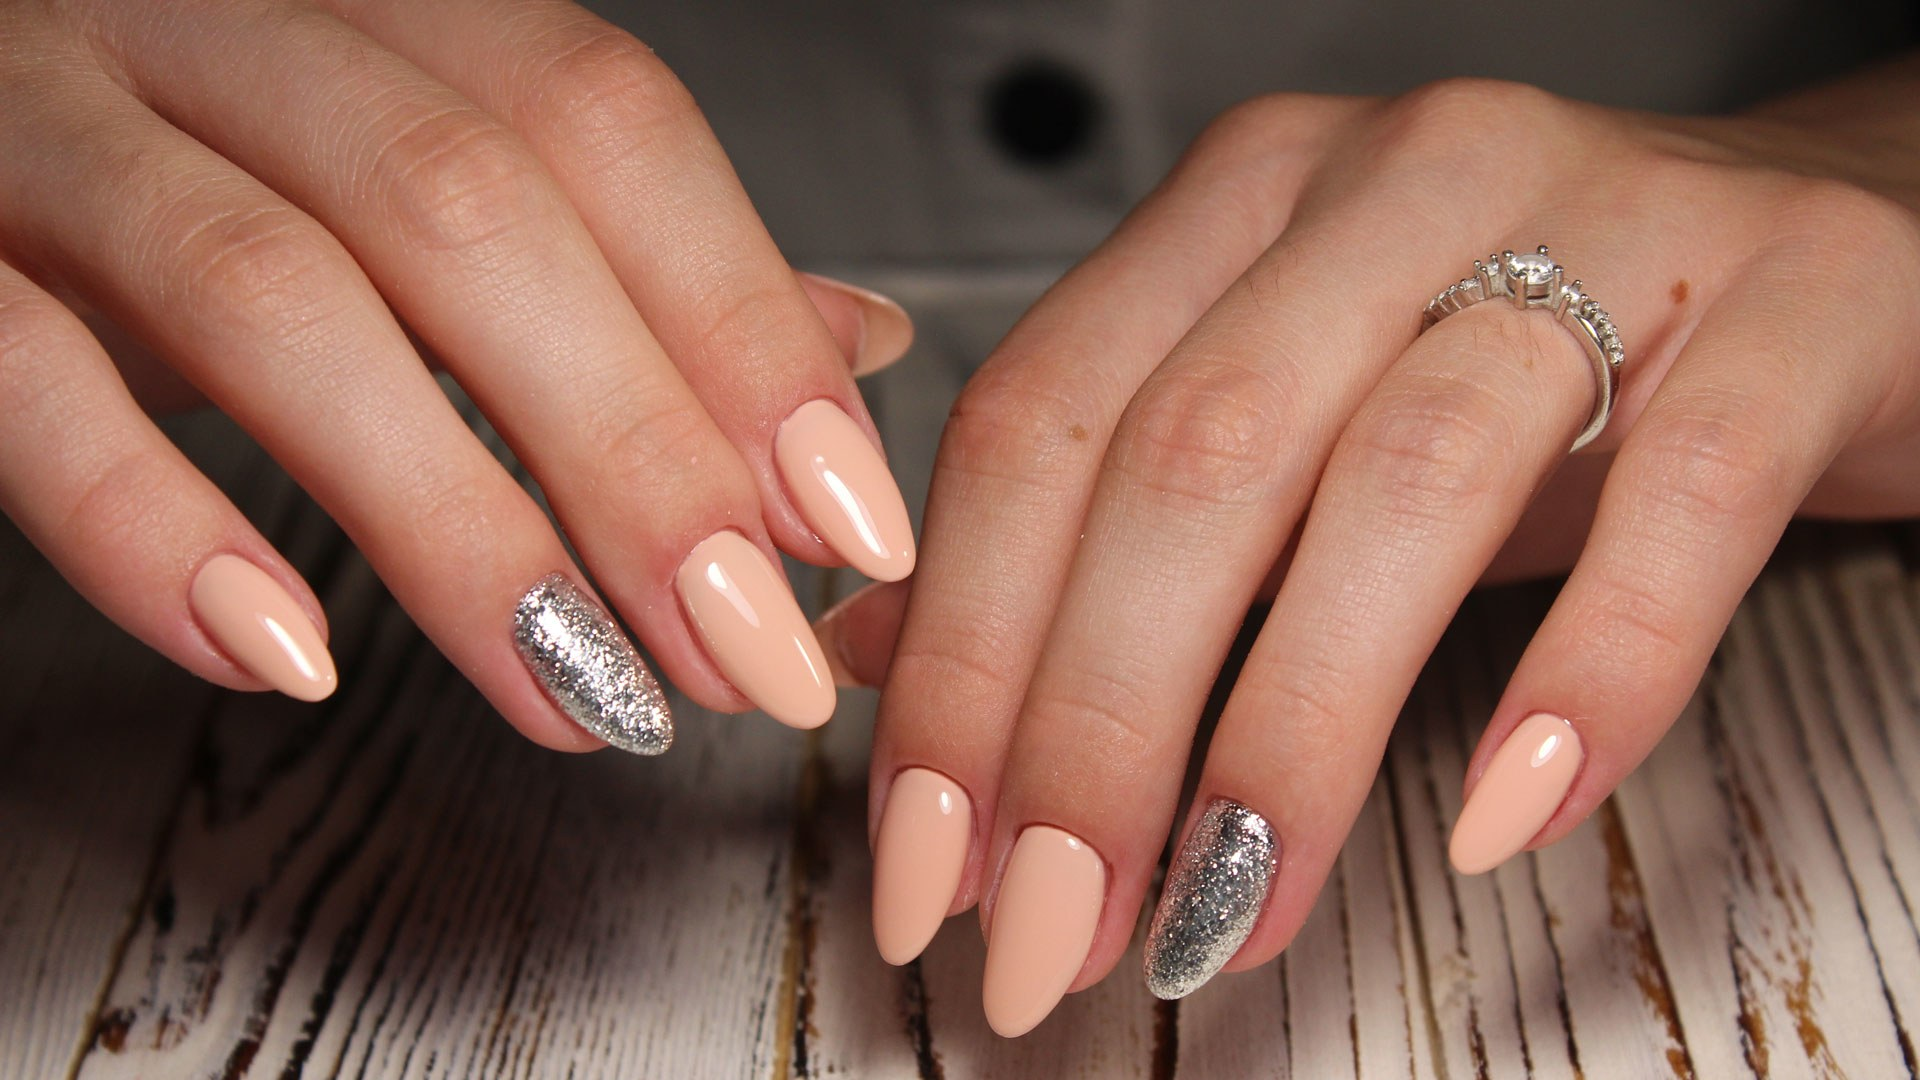 Difference Between Acrylic Nails & Gel Nails